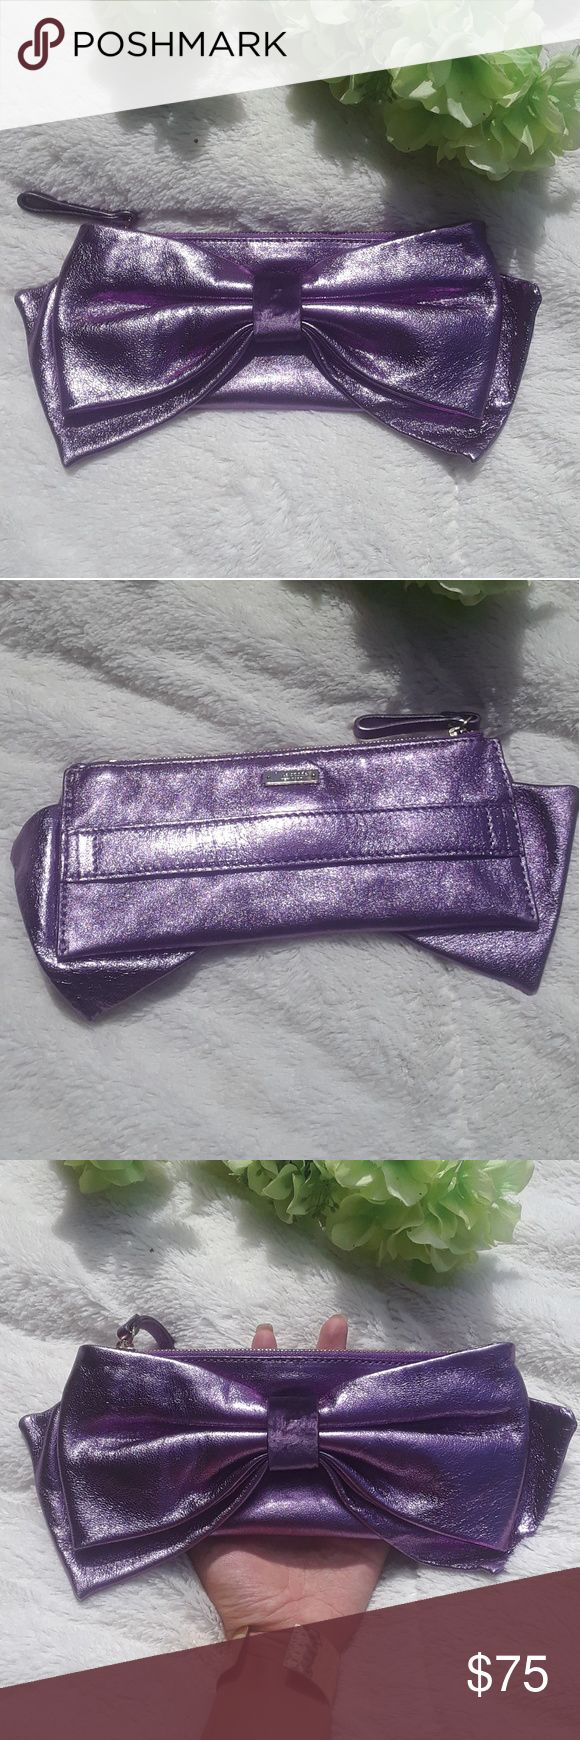 "KATE SPADE METALLIC PURPLE CLUTCH This Kate Spade clutch is hard to find!! Super adorable and in great condition! Inside and and are both very clean! Metallic purple 8 1/2"" length w/ out bow 11"" w/ bow kate spade Bags Clutches & Wristlets"